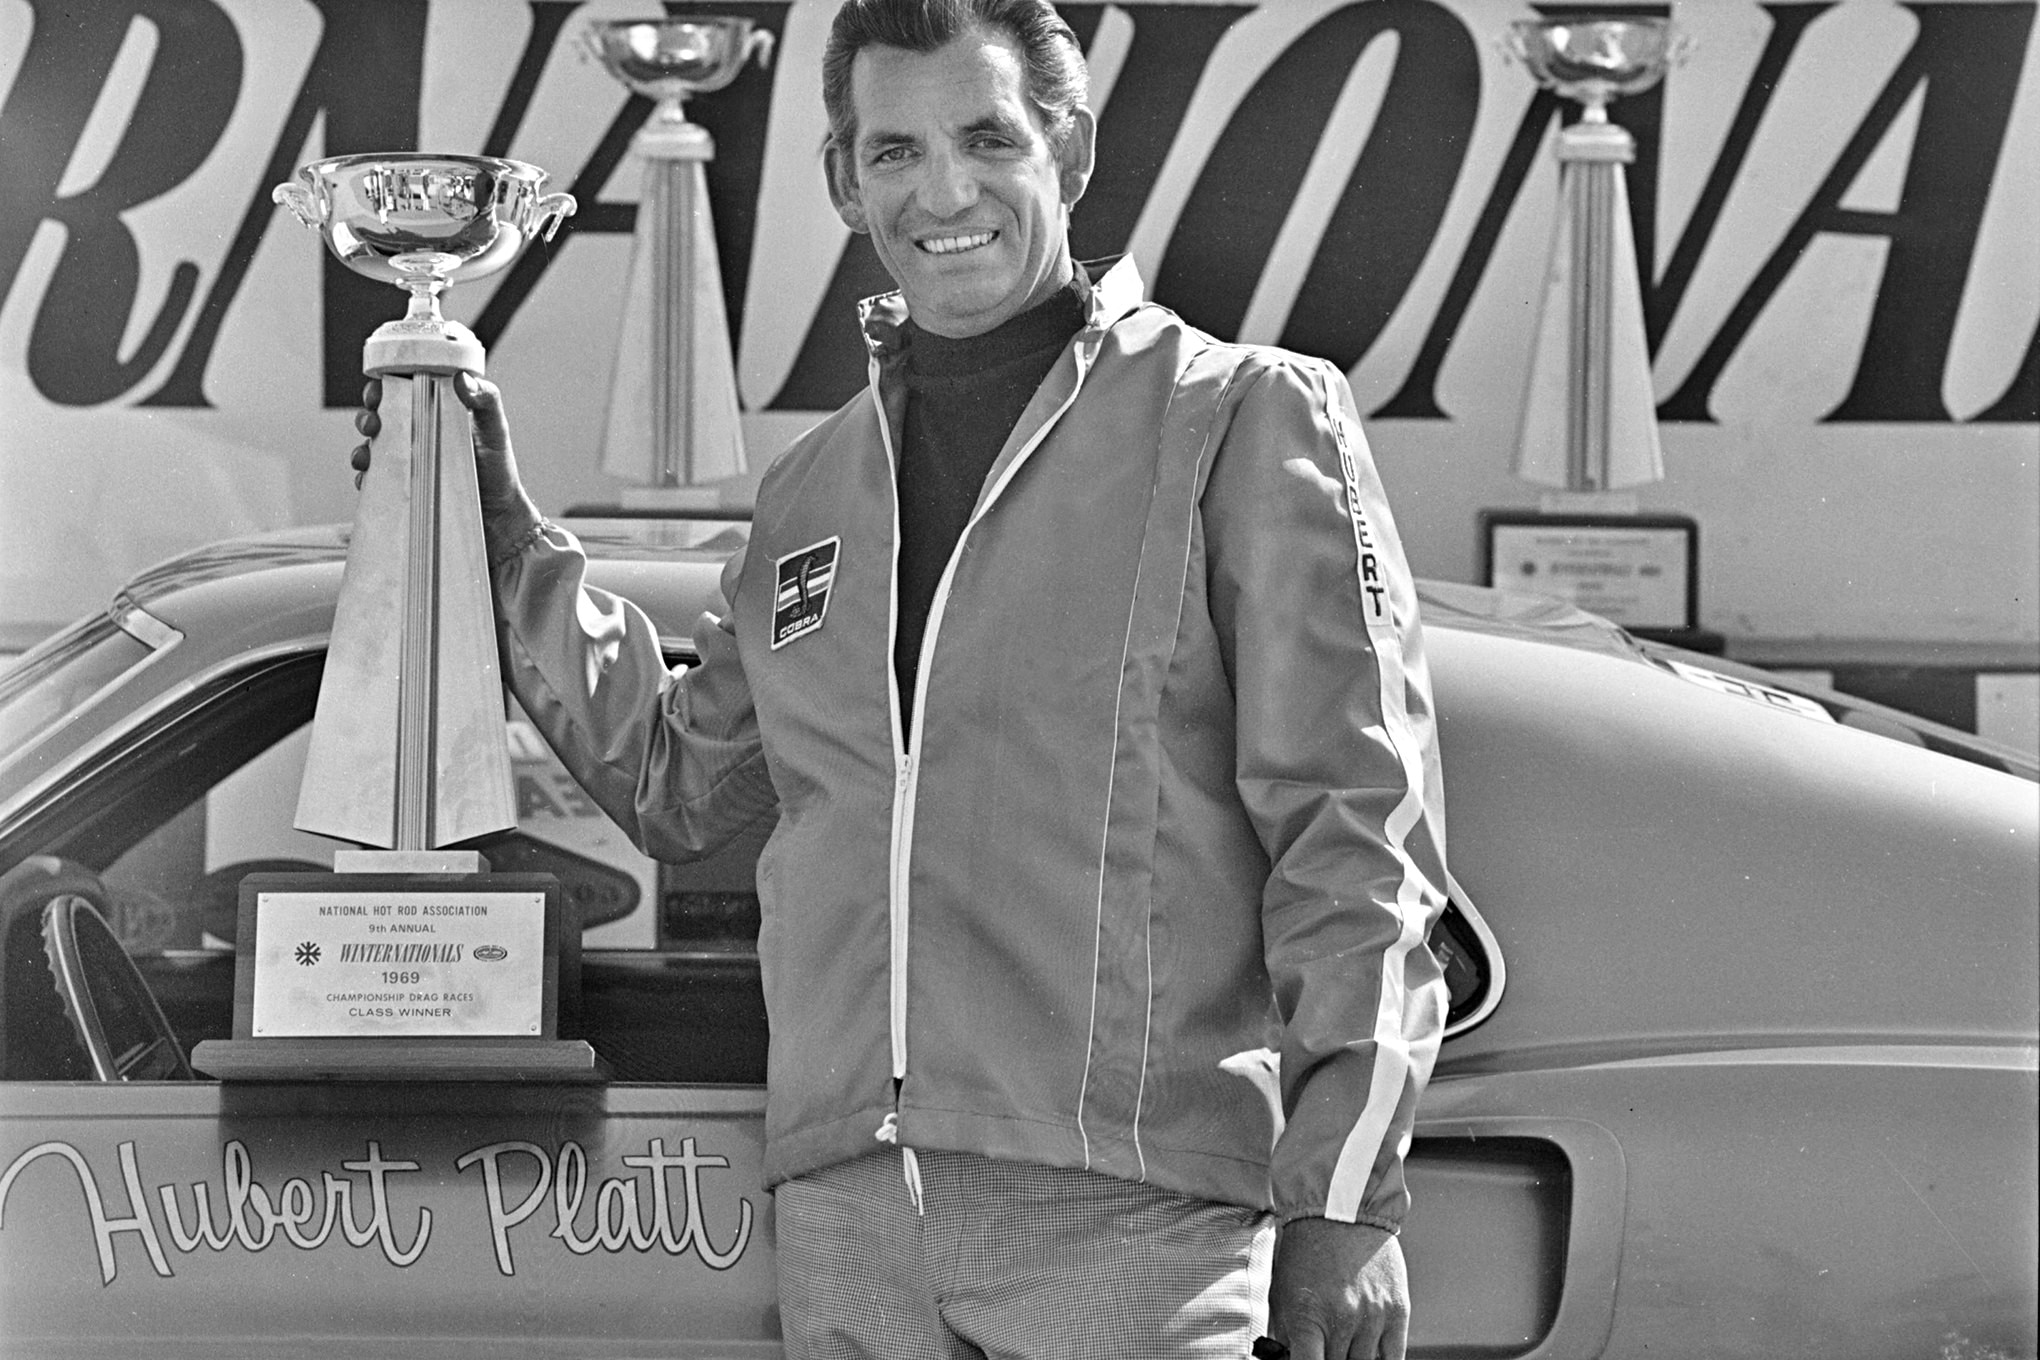 Platt won his class at the 1969 NHRA Winternationals, and your author was on hand to get this photo posing with his trophy.